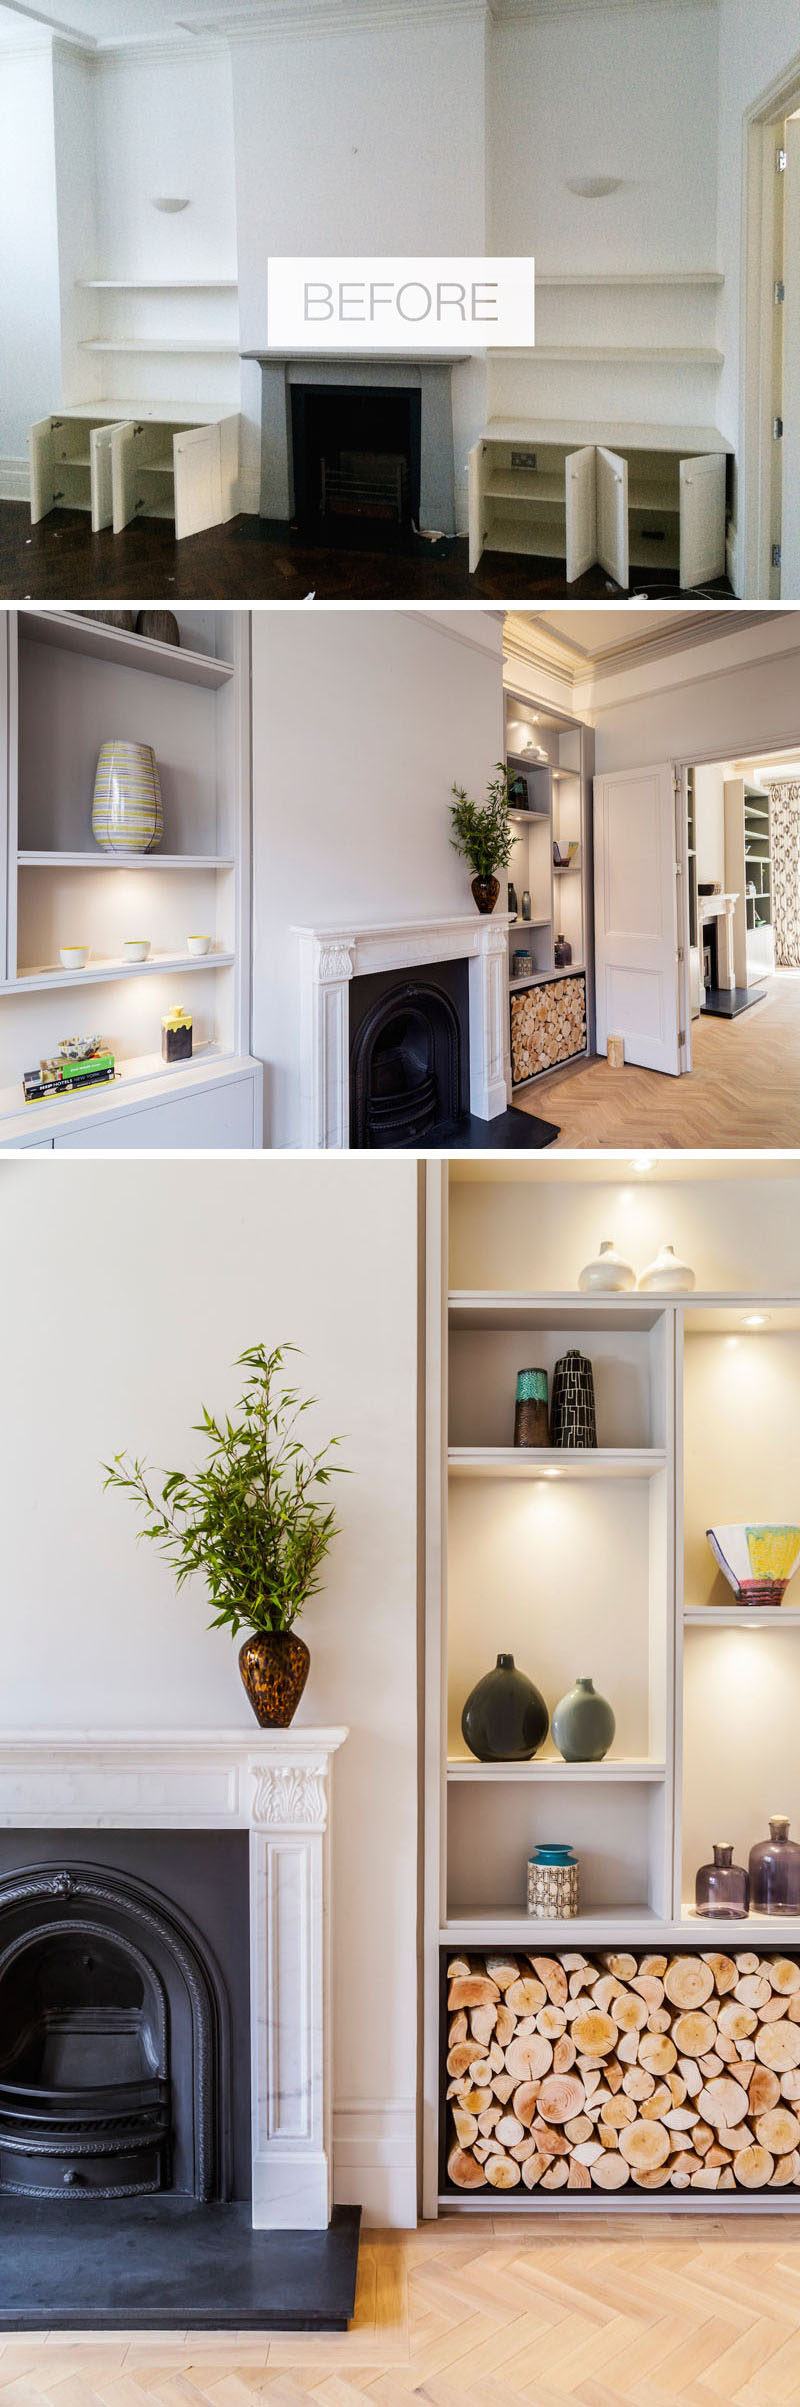 On the main floor of this refurbished house, there's two connecting reception rooms that were updated with bespoke joinery,light greyed oak parquet floors and traditional white marble fireplaces, one of which has a wood burning stove installed. #RenovatedInterior #InteriorDesign #Shelving #Fireplace